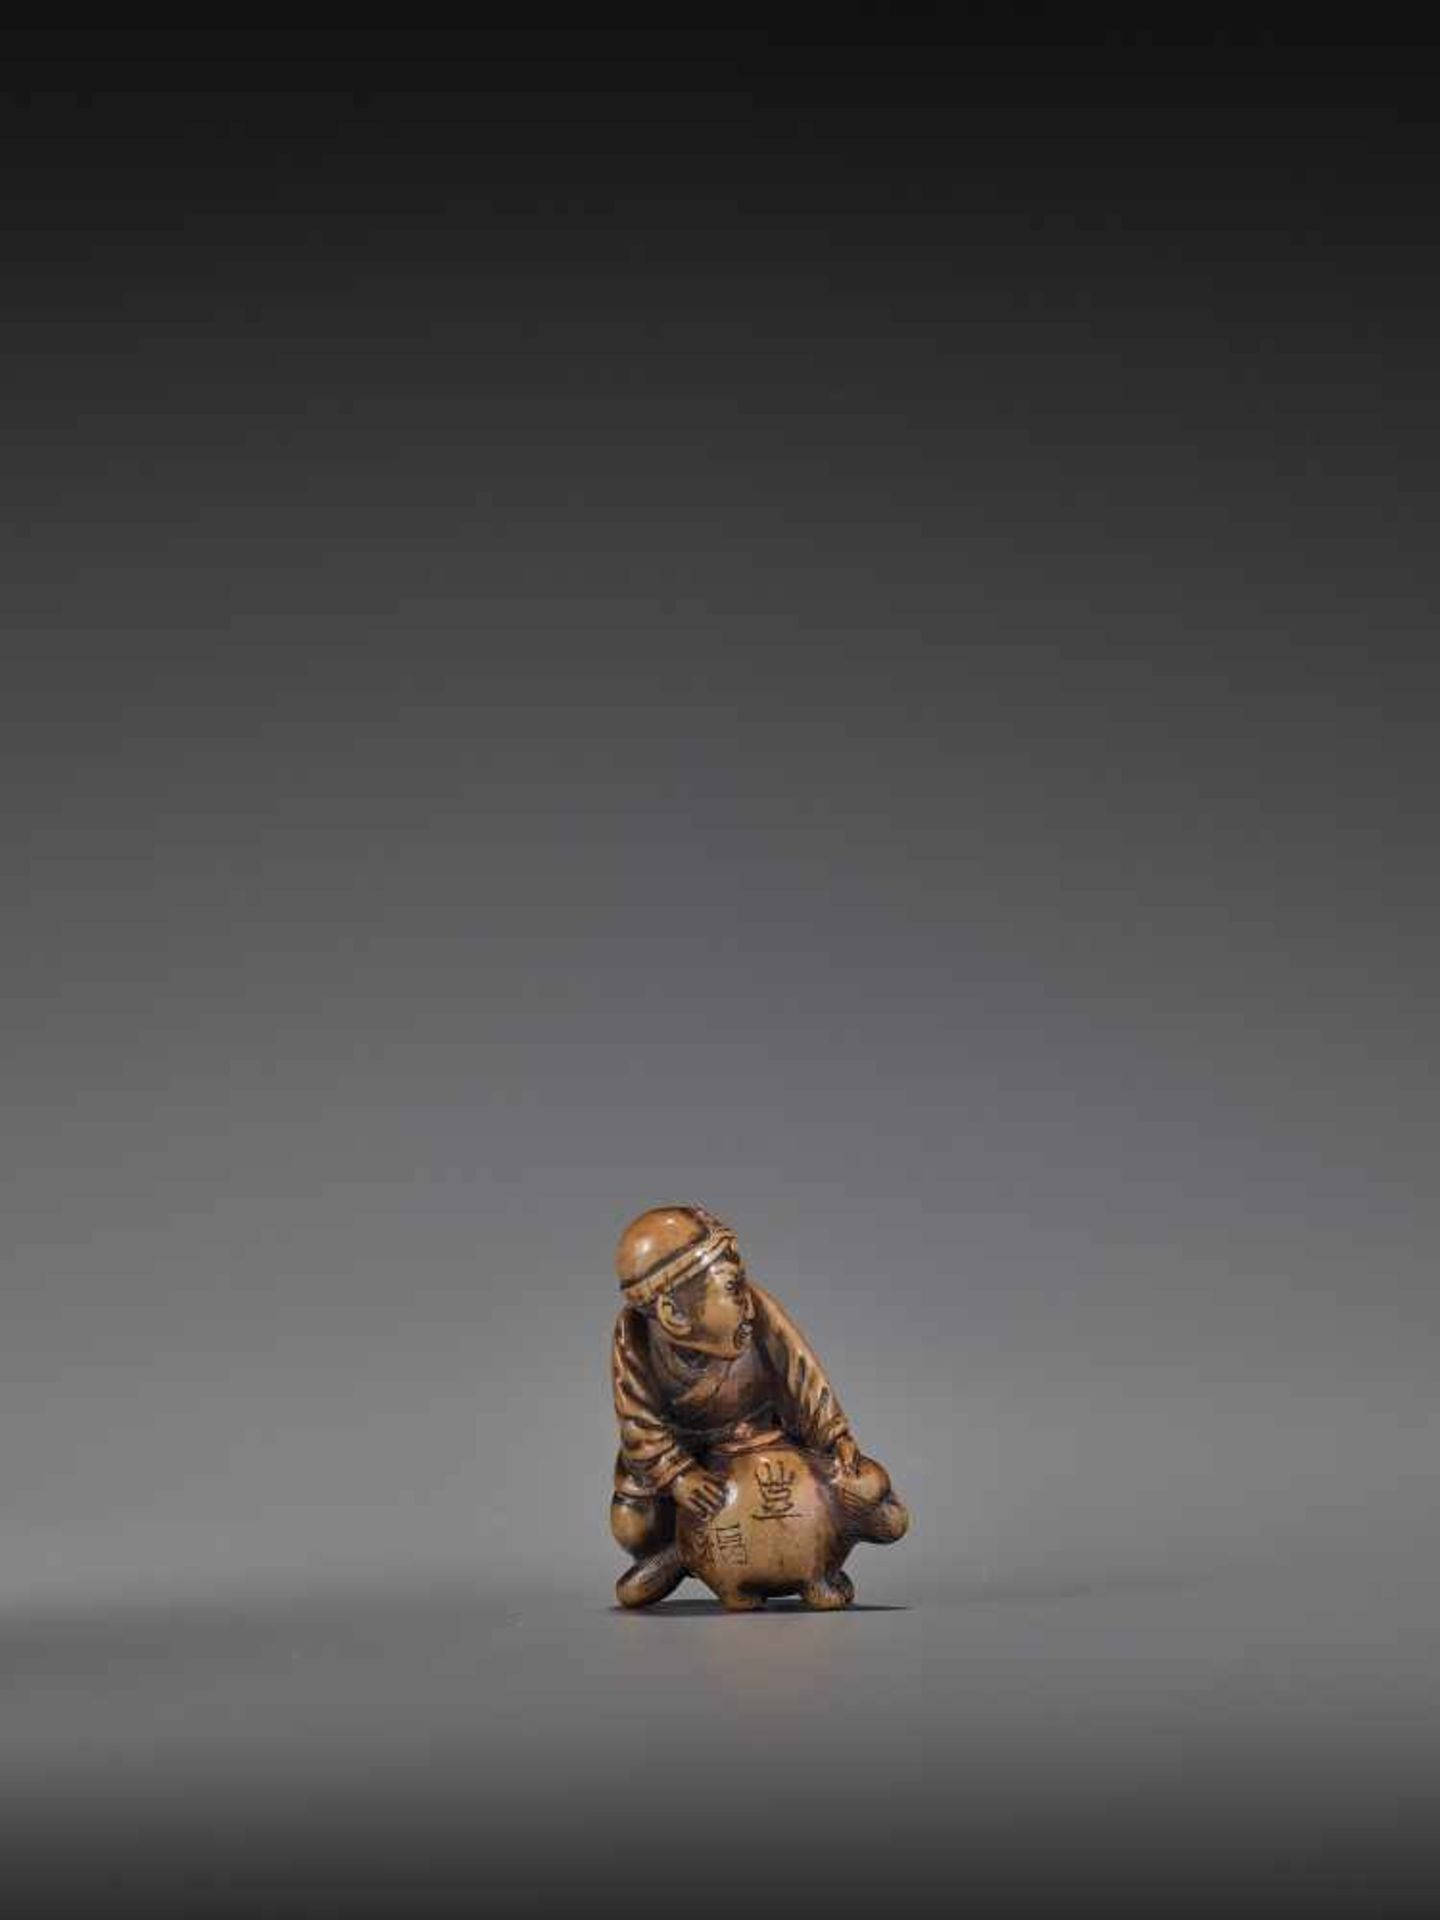 HIDEHISA: A RARE WOOD NETSUKE OF A THIEF STEALING THE MAGIC TANUKI KETTLE By Hidehisa, signed - Image 9 of 12